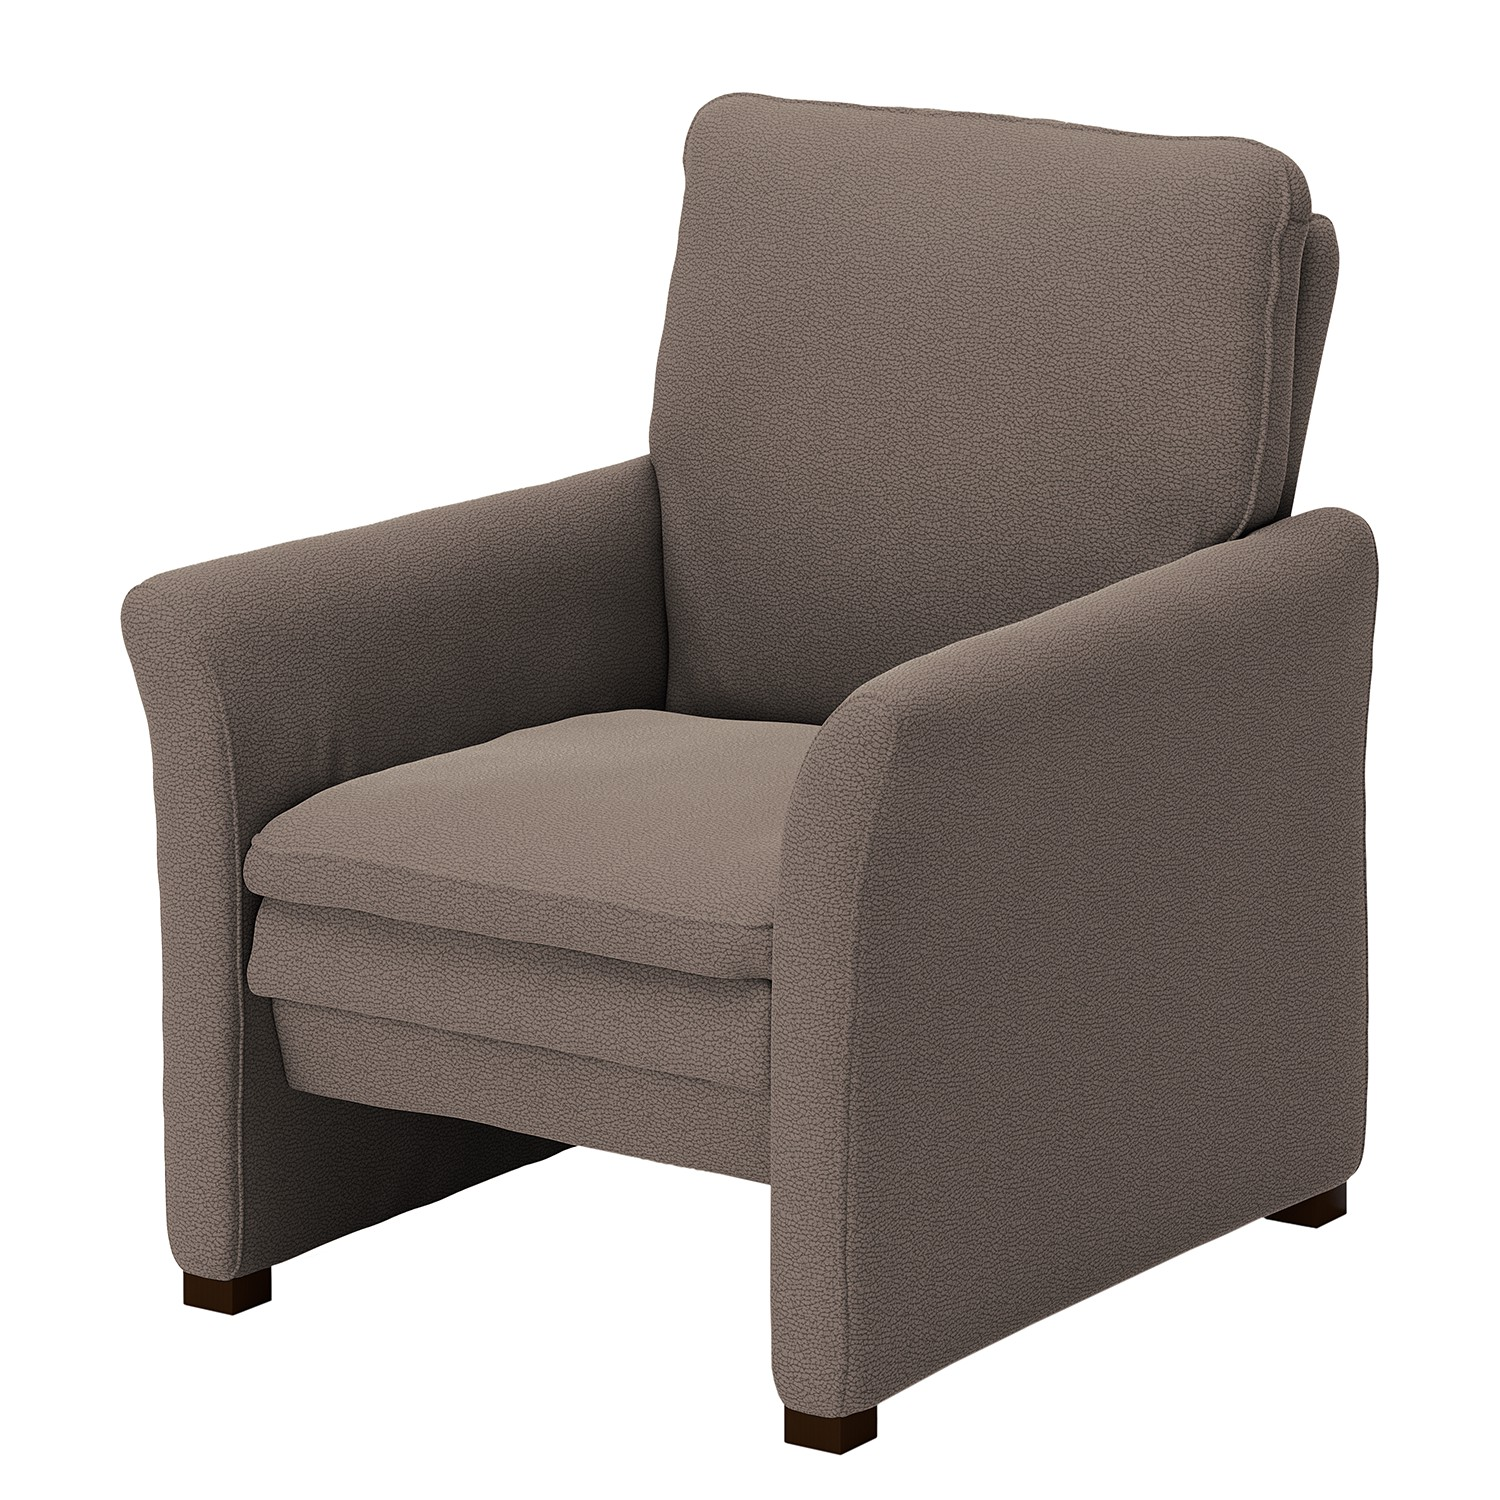 home24 Modoform Sessel Capoma II Taupe Microfaser 80x89x84 cm (BxHxT)